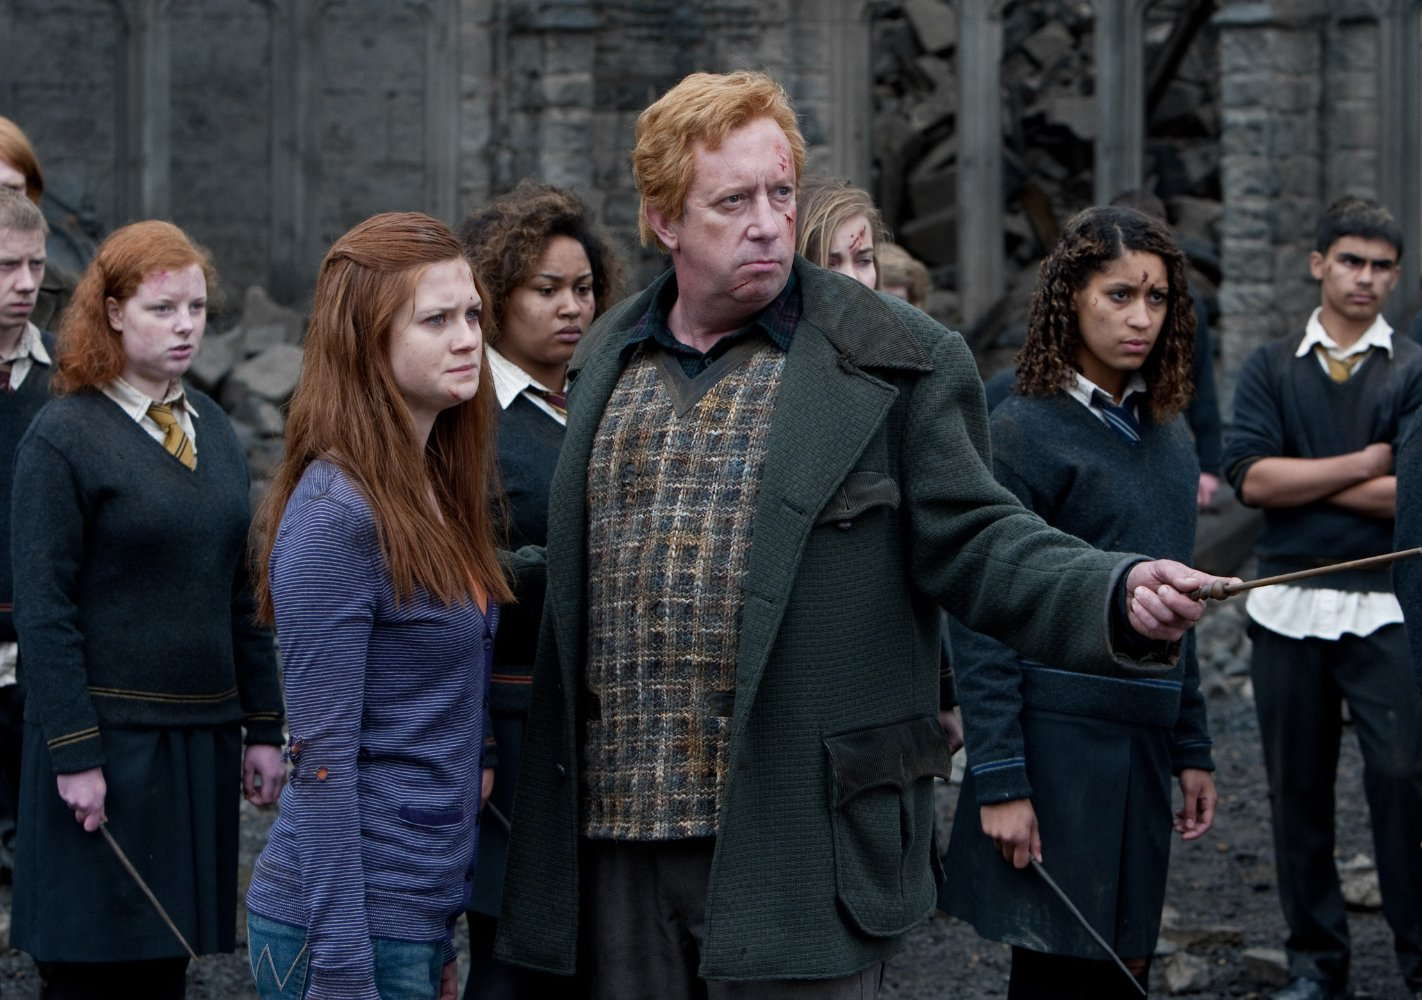 Harry Potter And The Deathly Hallows (Part 2)